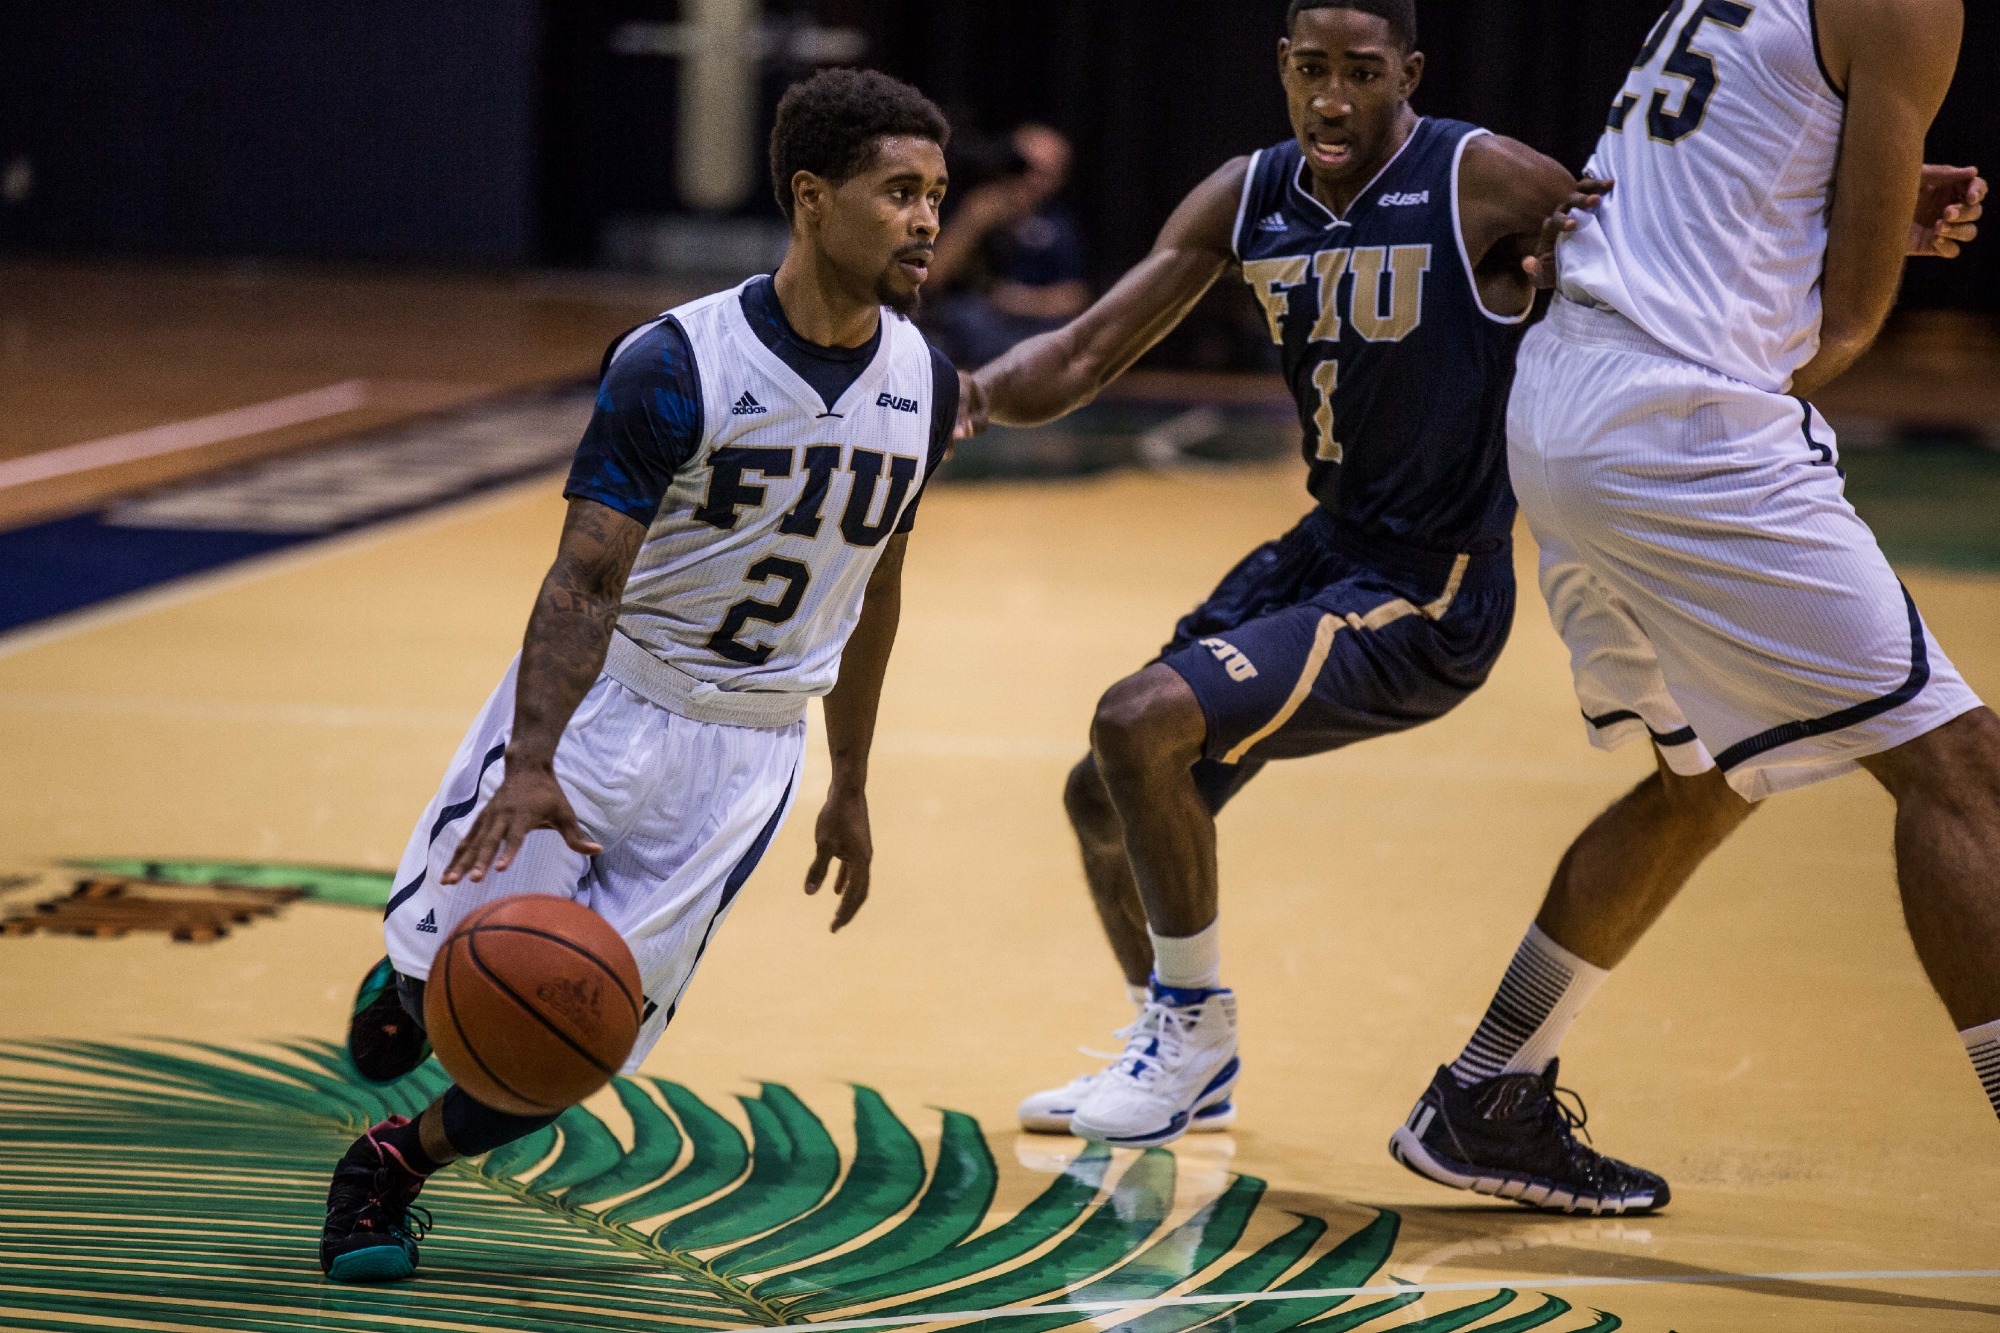 Ray Taylor FIU basketball